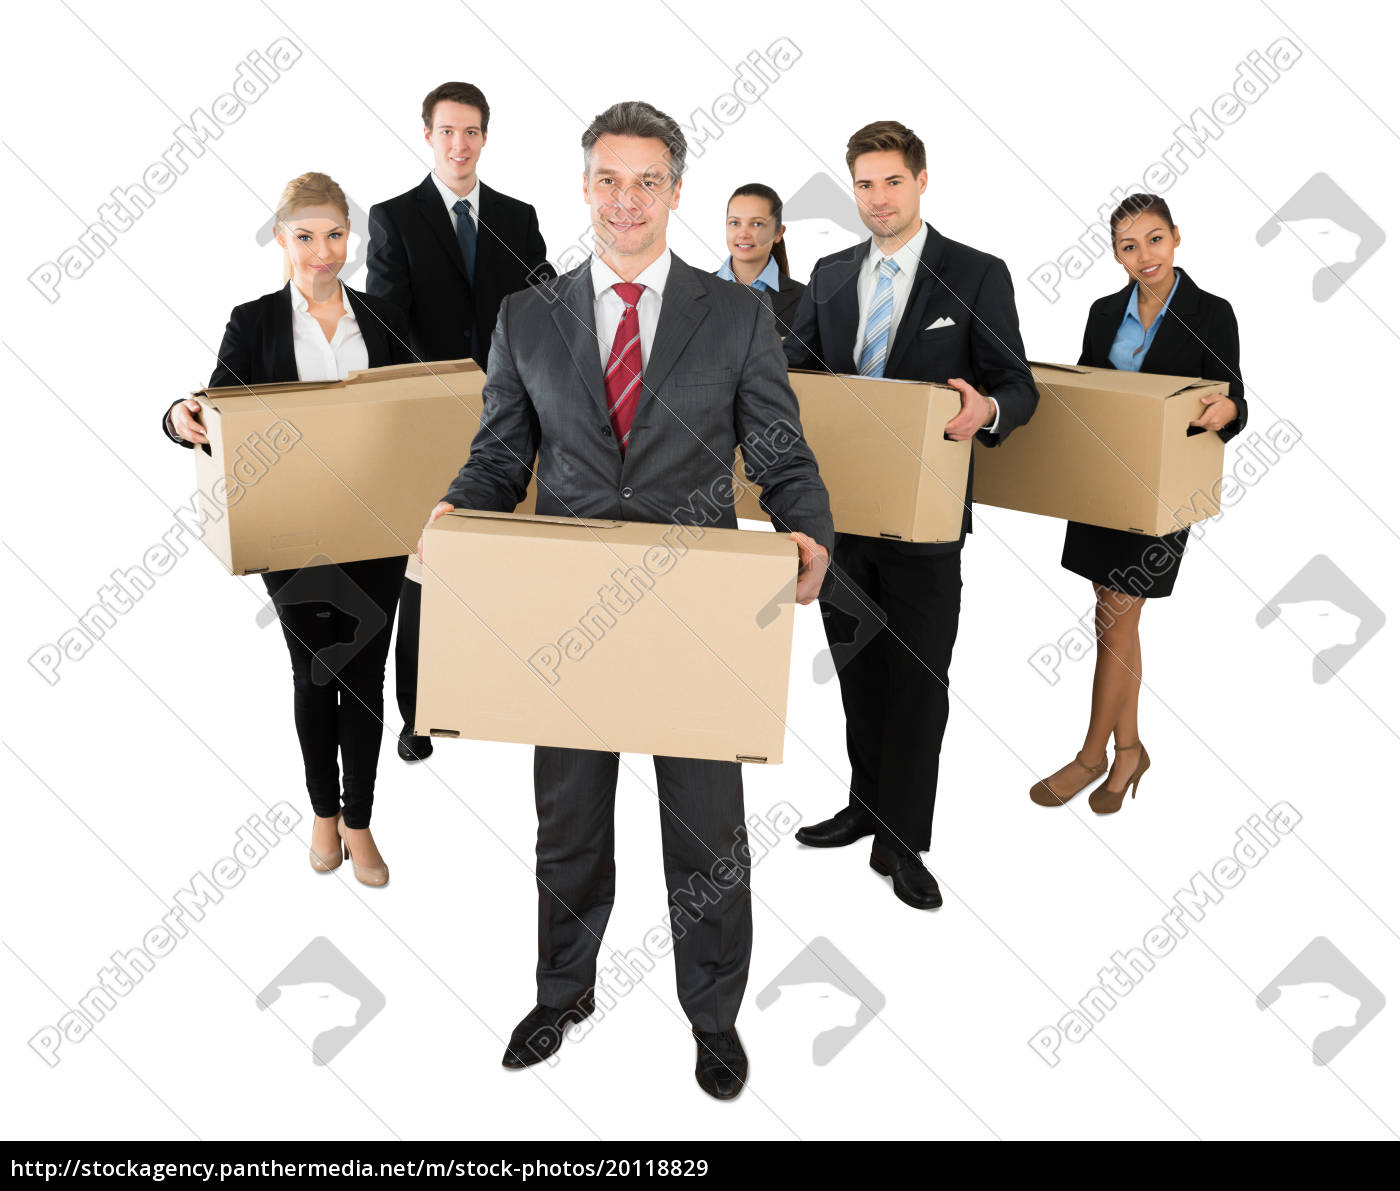 businesspeople, standing, with, cardboard, boxes - 20118829